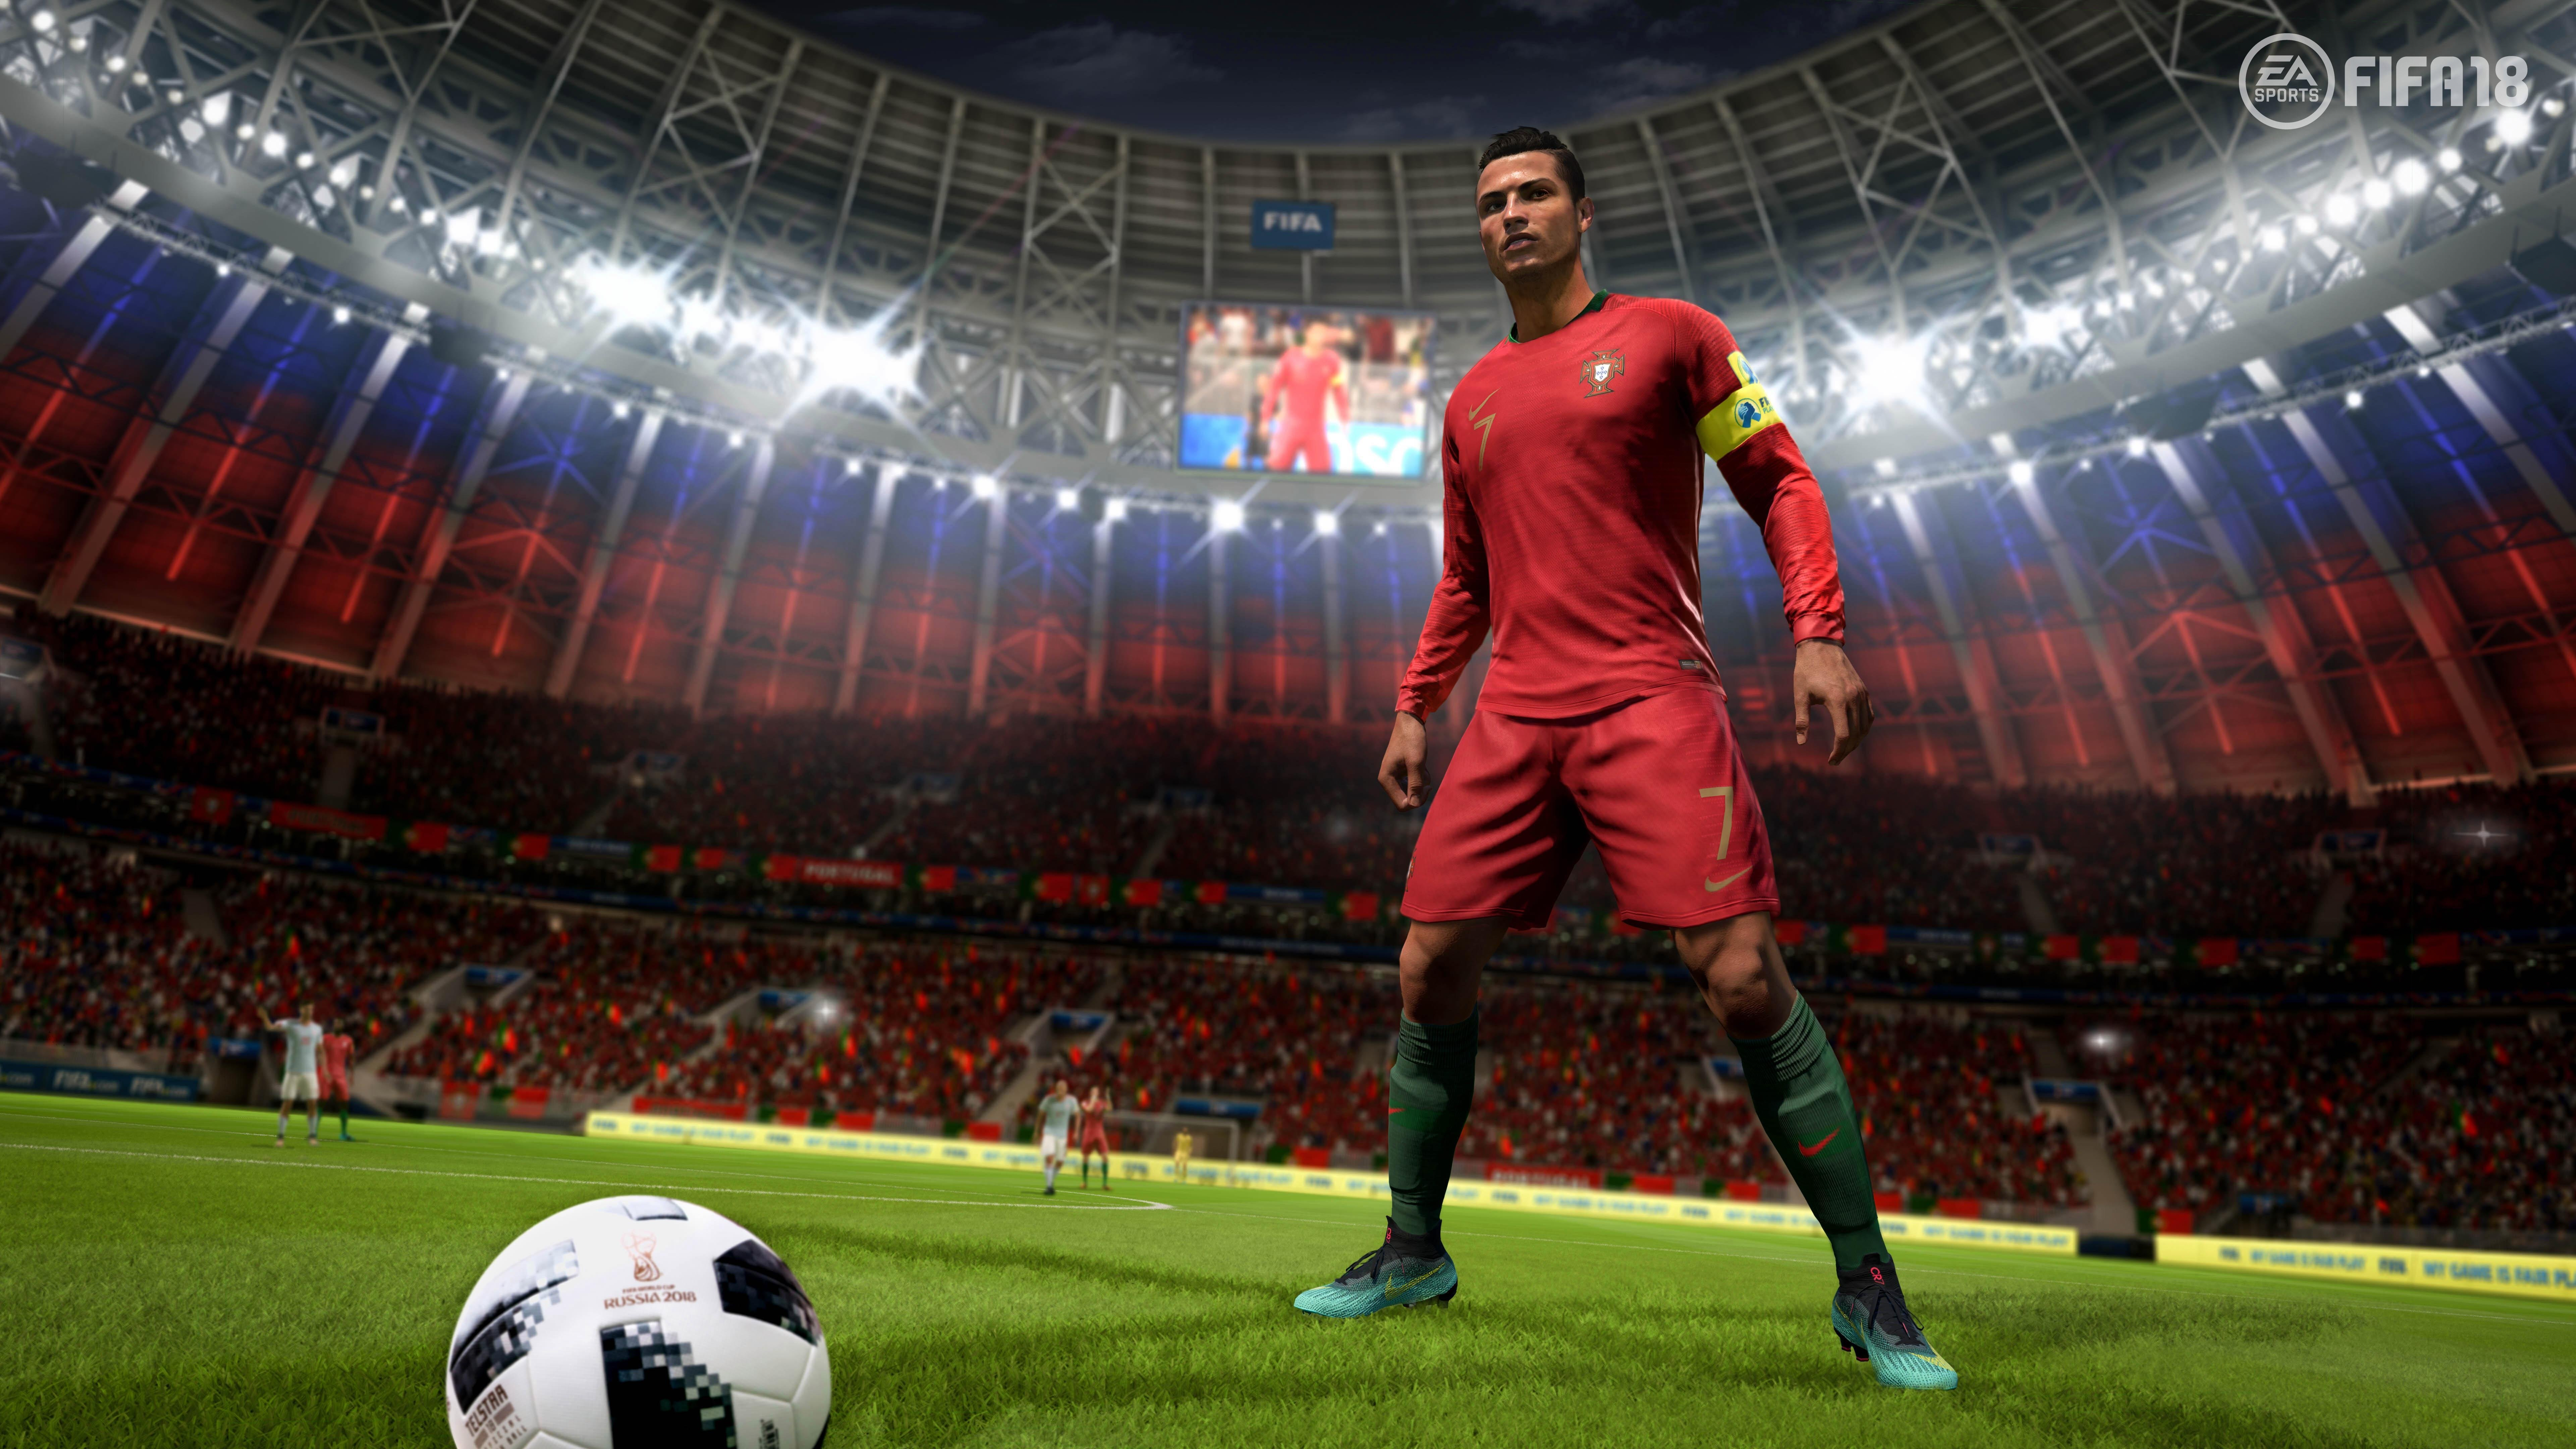 7680x4320 Ronaldo Fifa 18 8k 8k Hd 4k Wallpapers Images Backgrounds Photos And Pictures